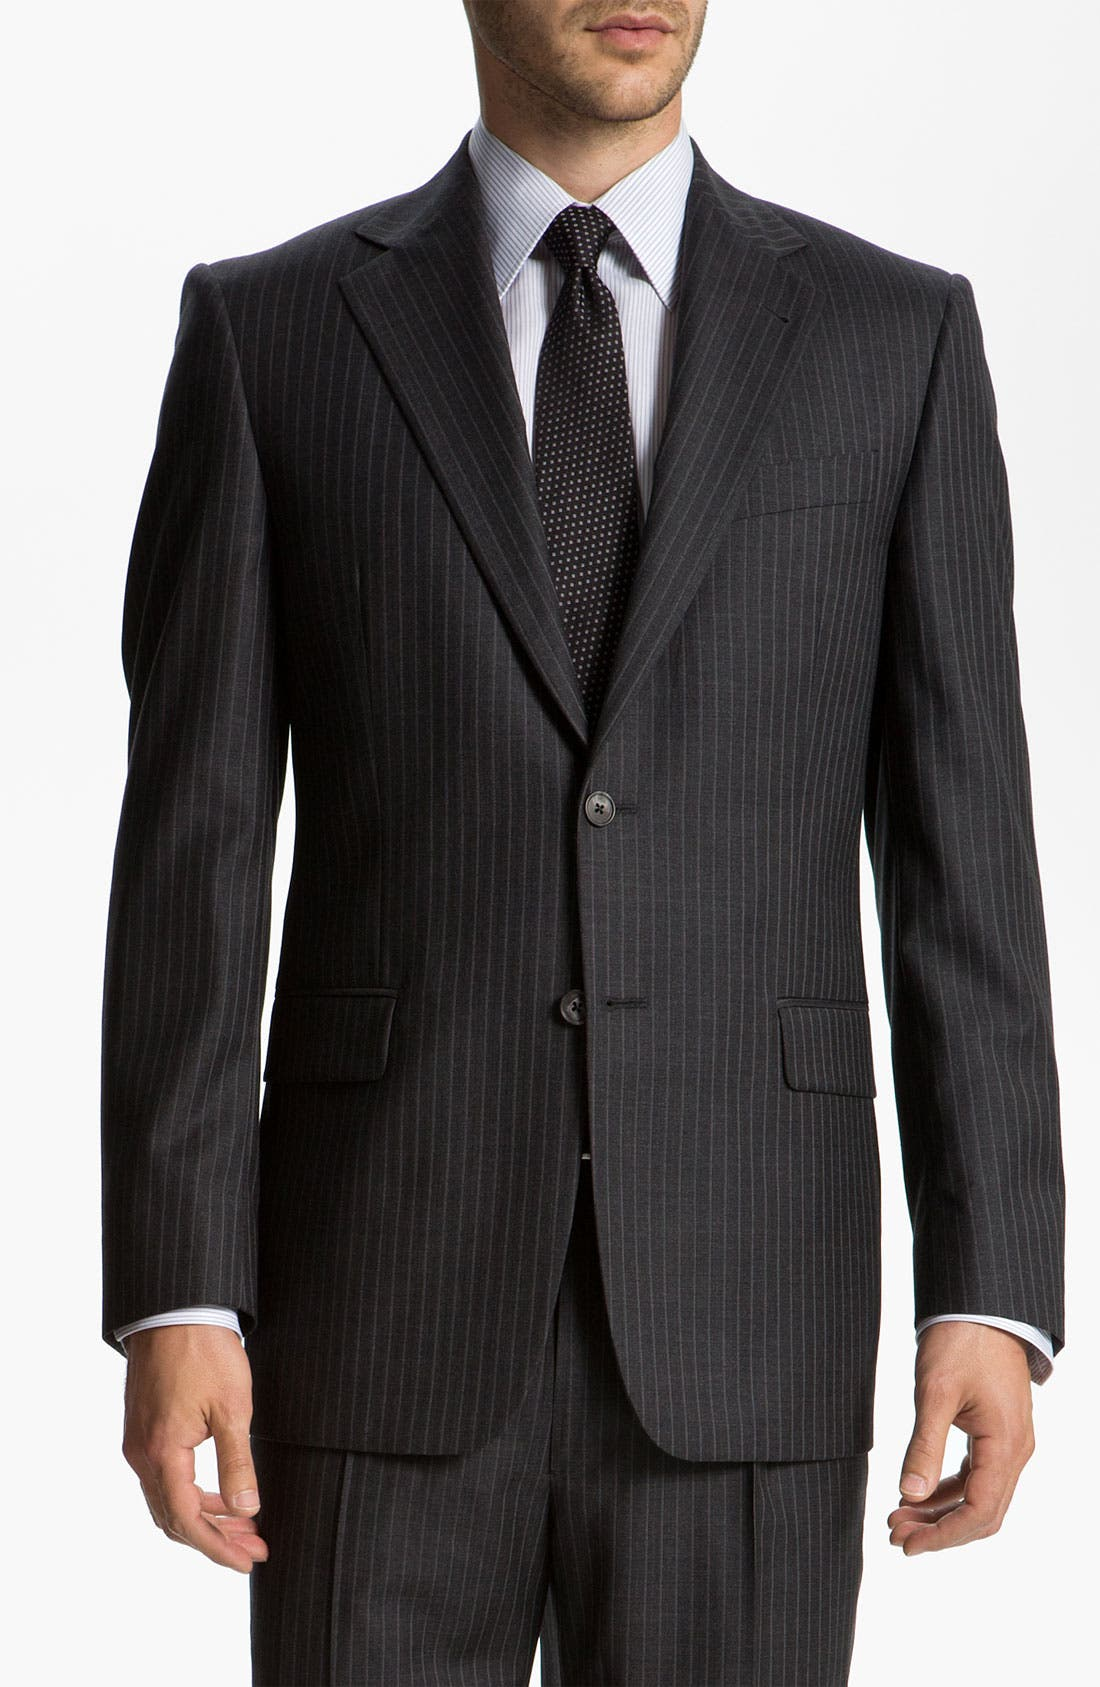 Alternate Image 1 Selected - Joseph Abboud 'Signature Silver' Stripe Suit